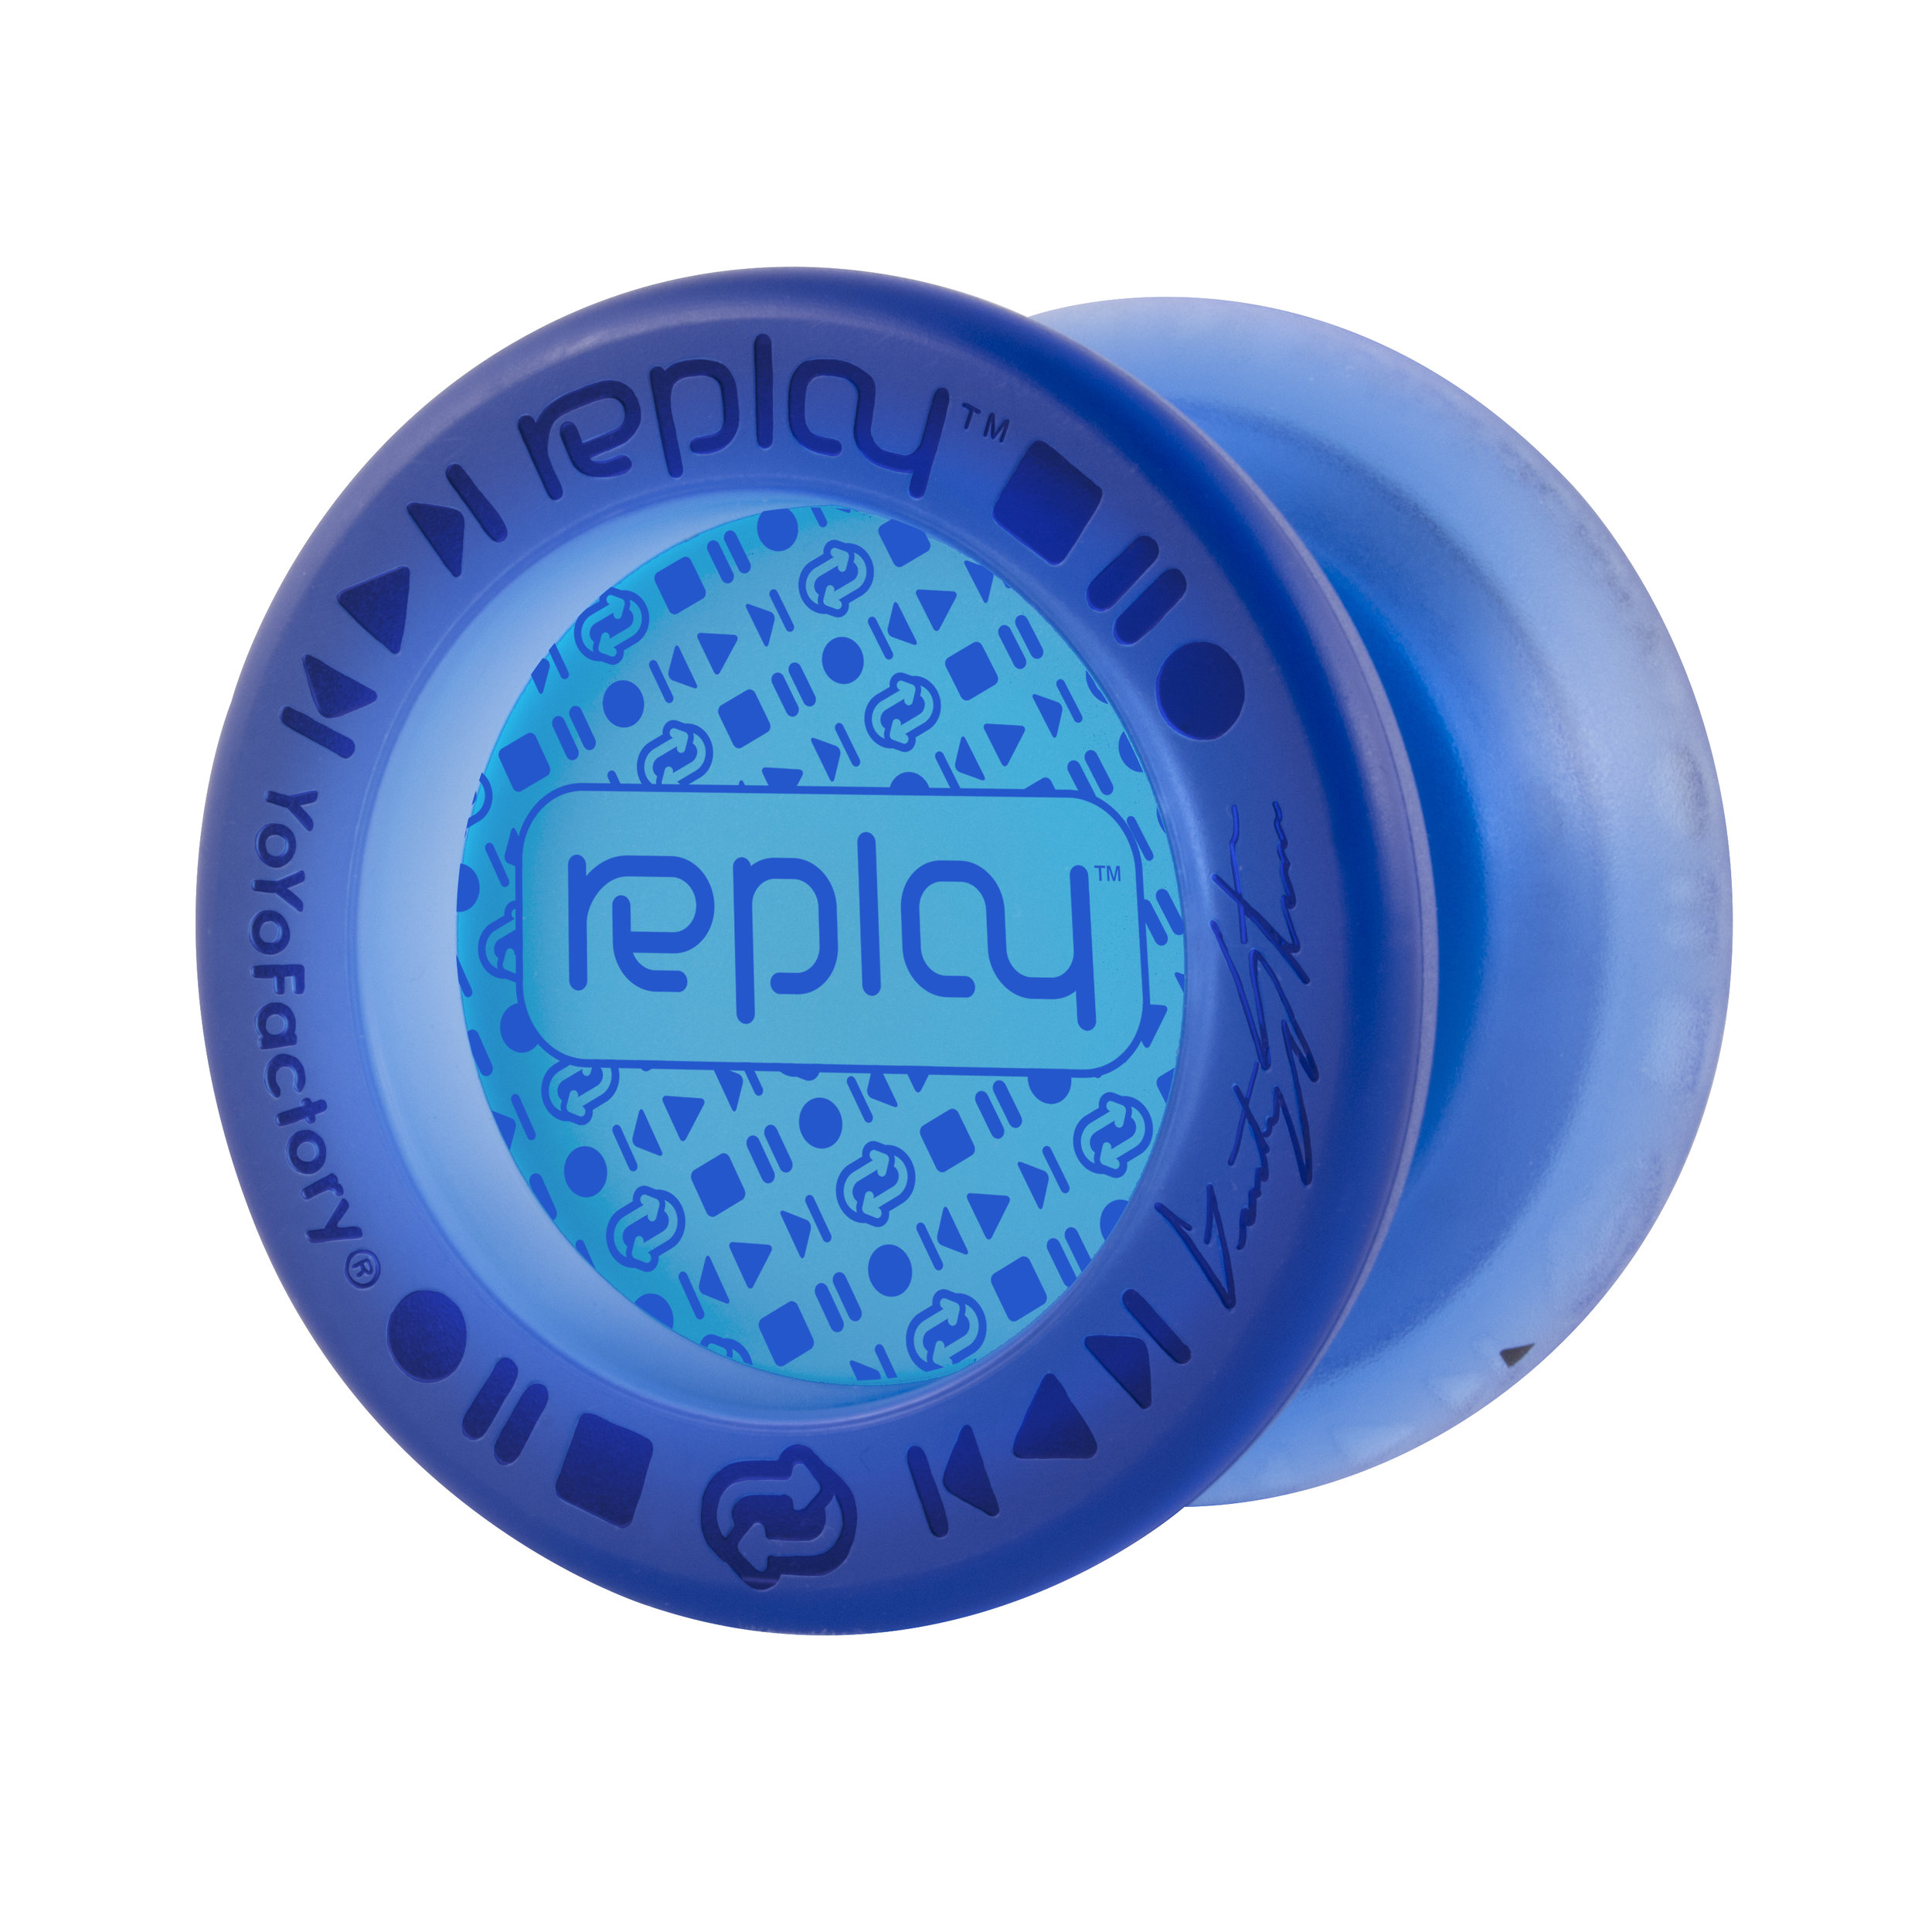 Replay-Regular-BlueAqua-HR.jpg